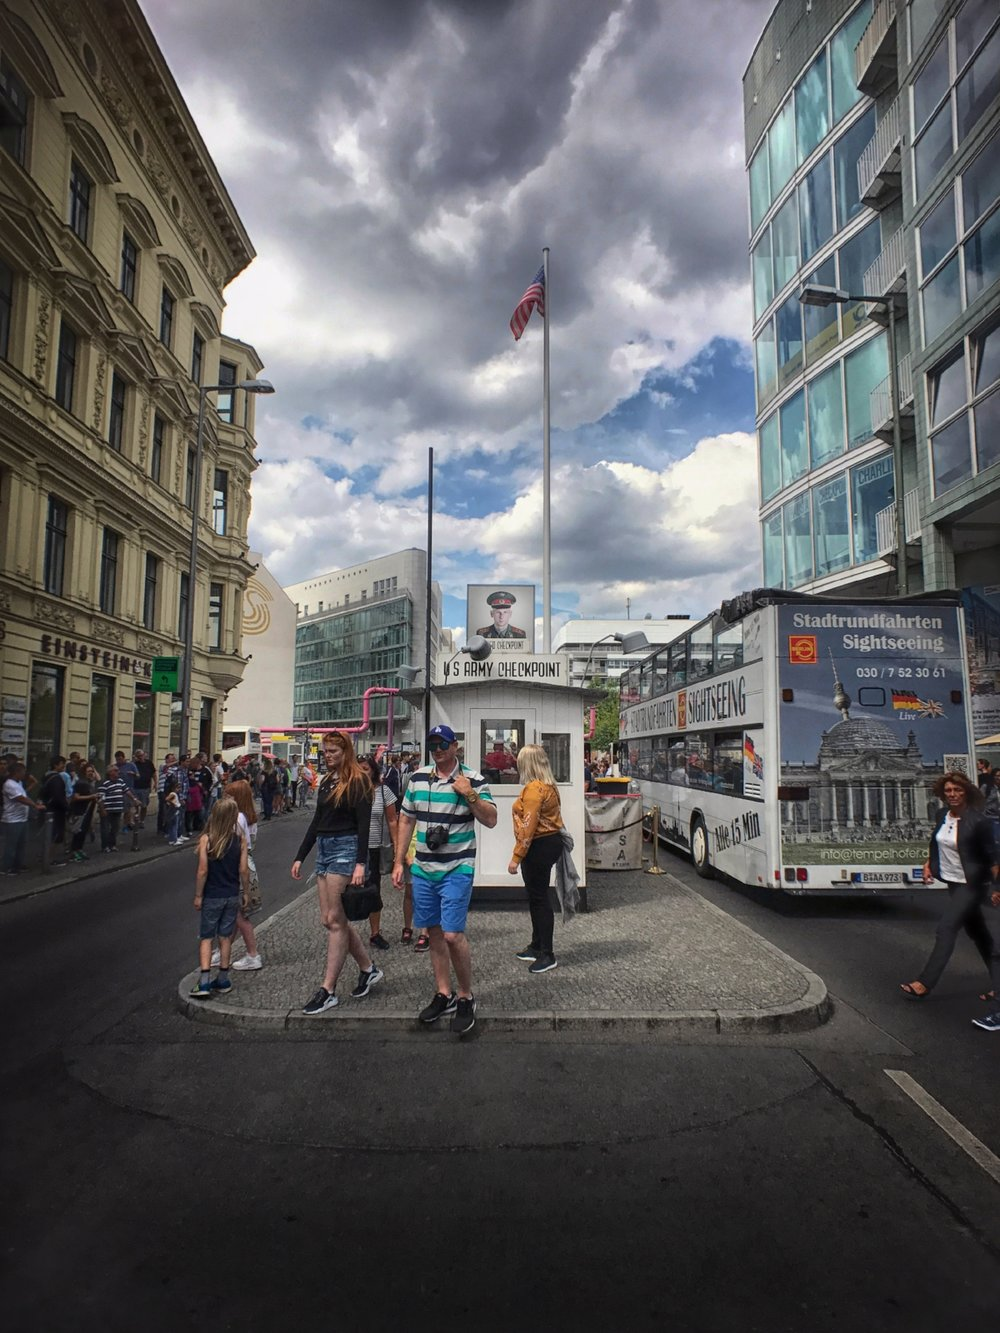 Another view of Checkpoint Charlie